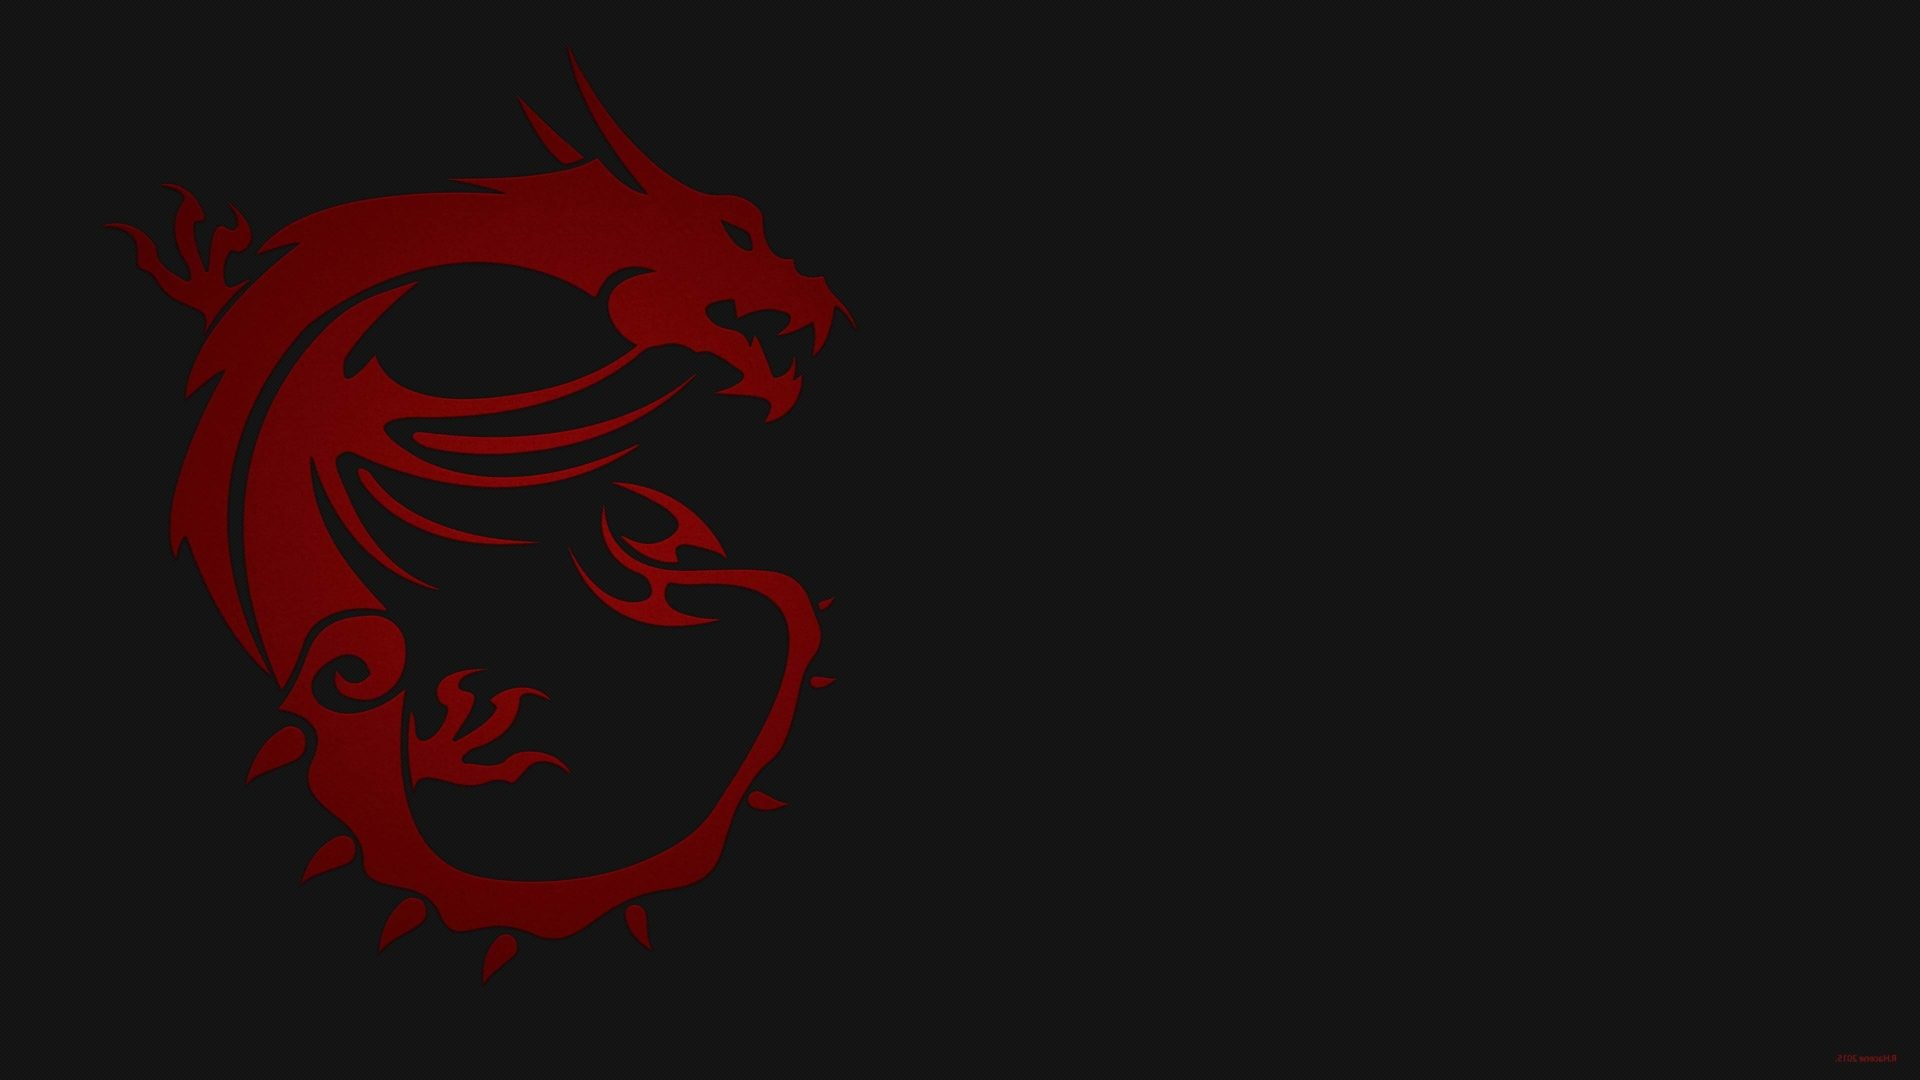 Filename: msi-dragon-logo-wallpaper-dark-1920×1080.jpg